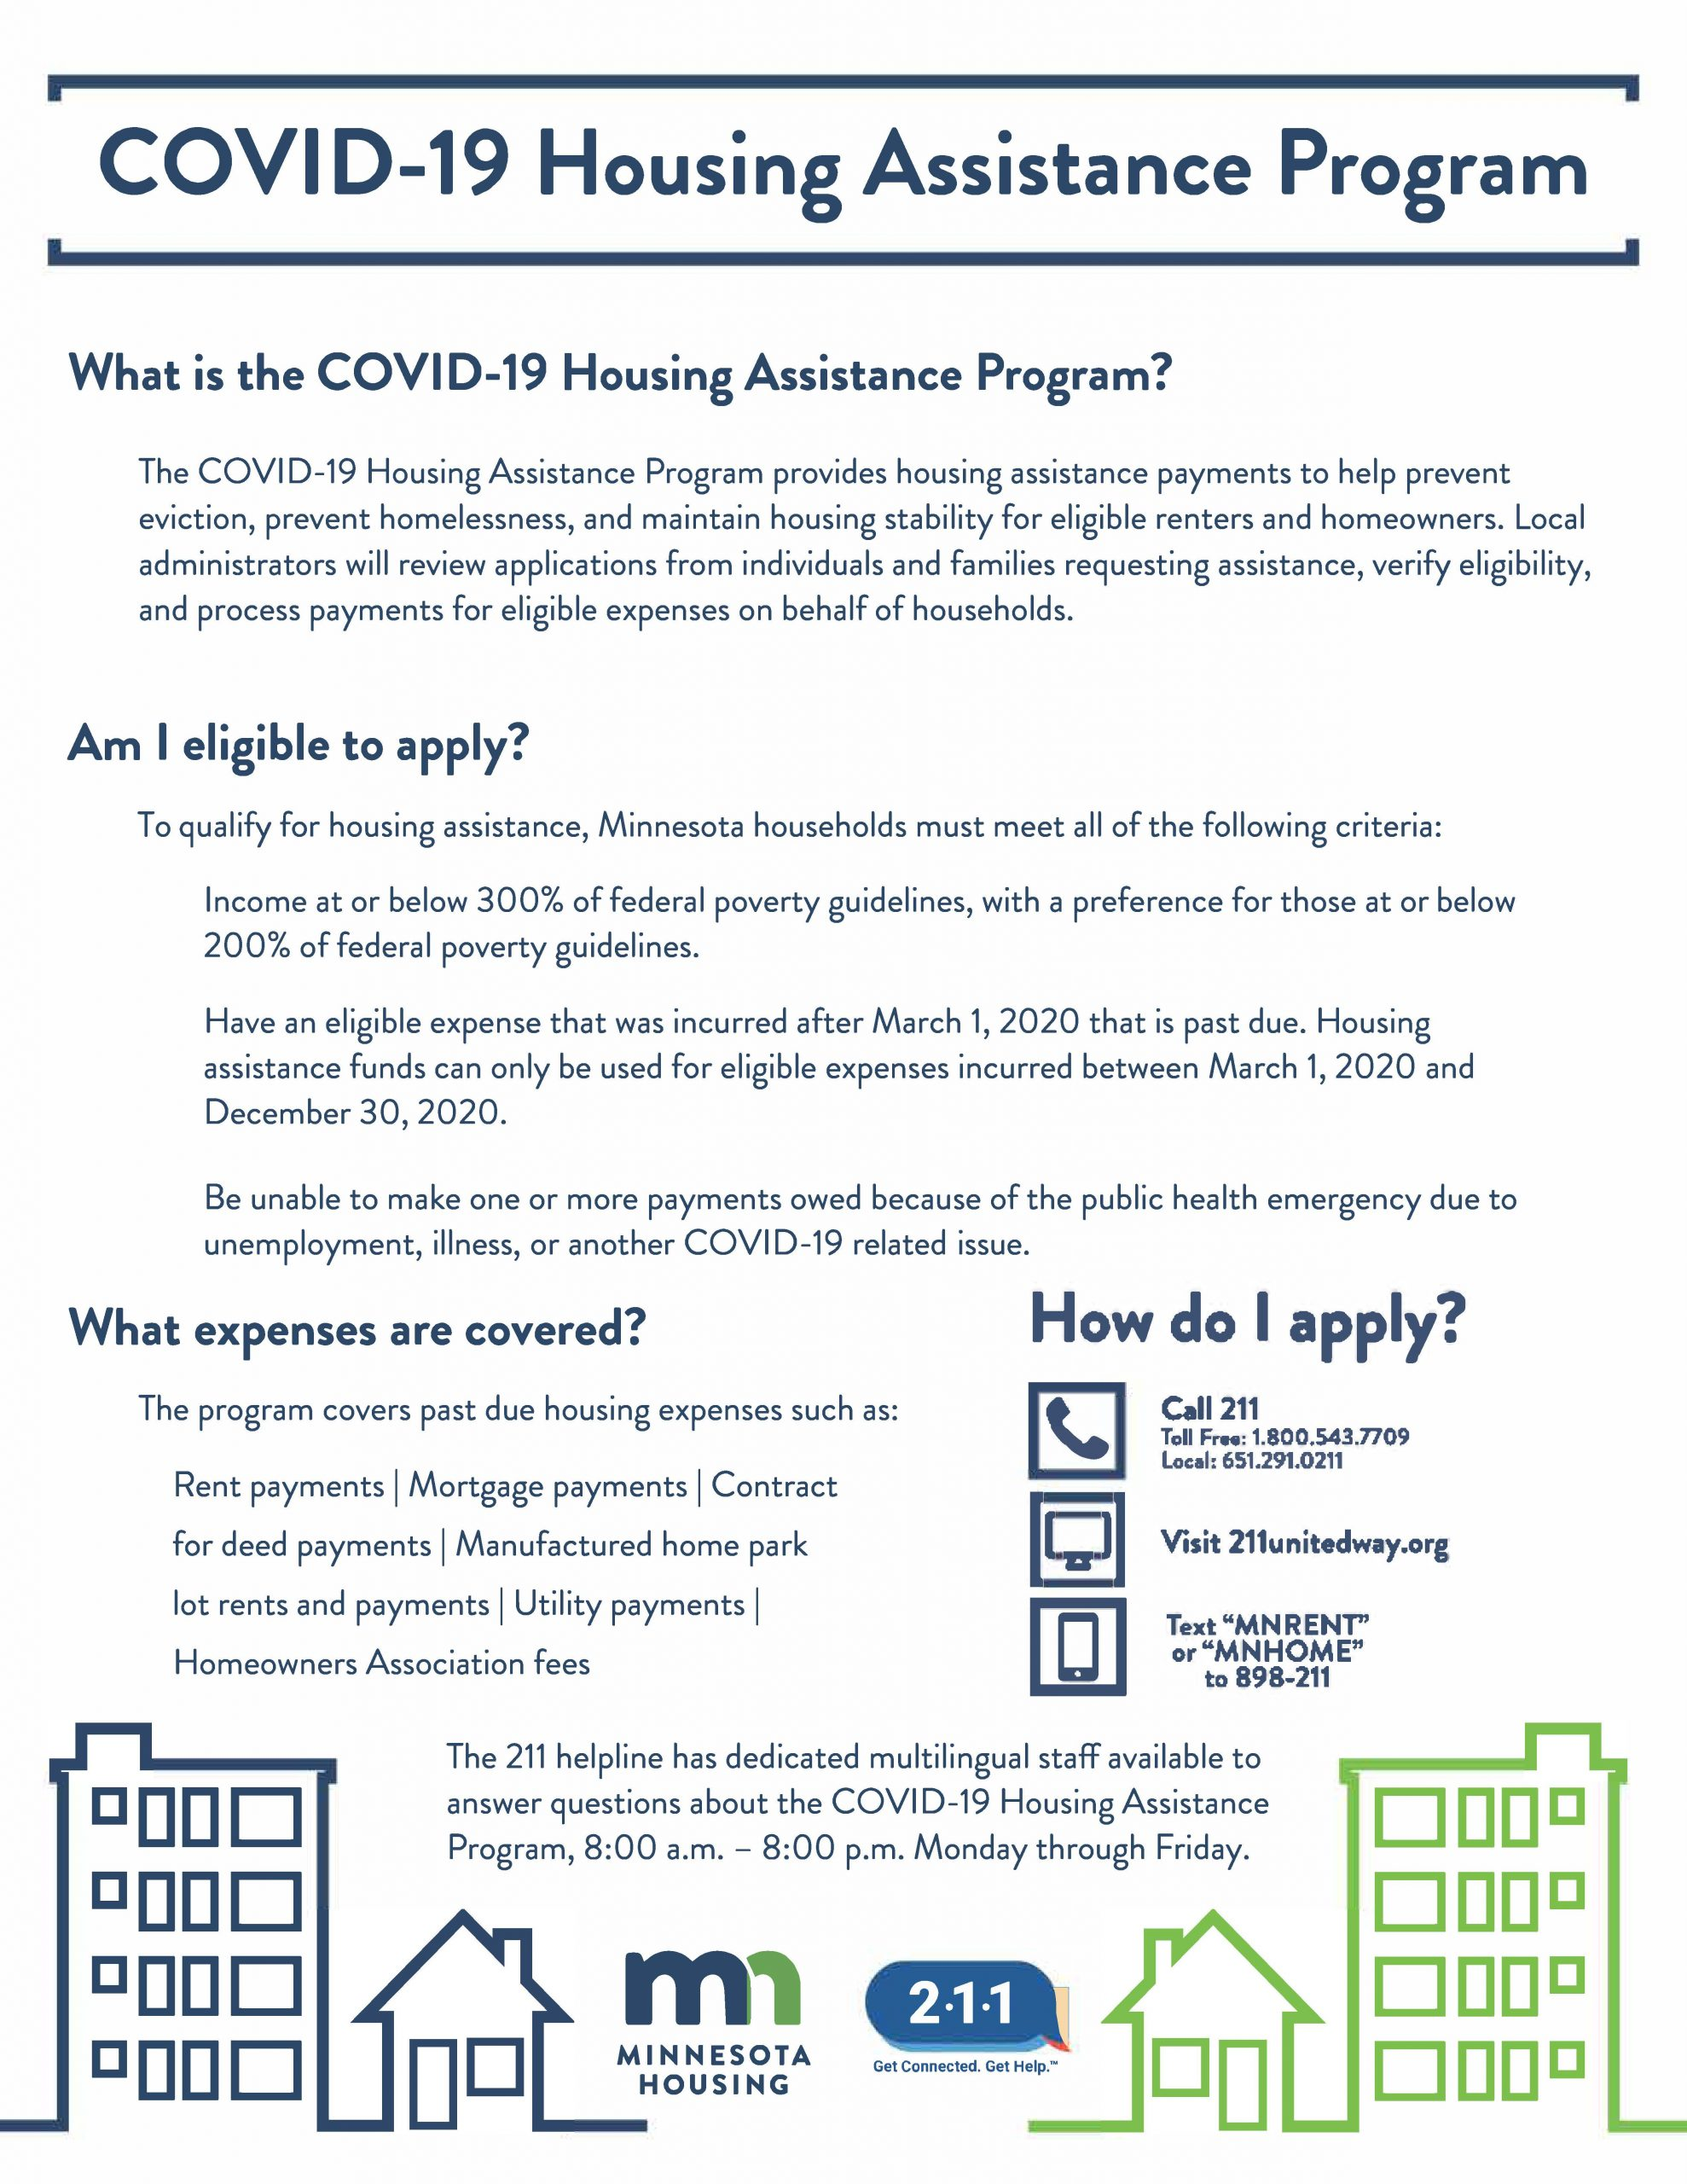 COVID-19 Housing Assistance Program One Pager